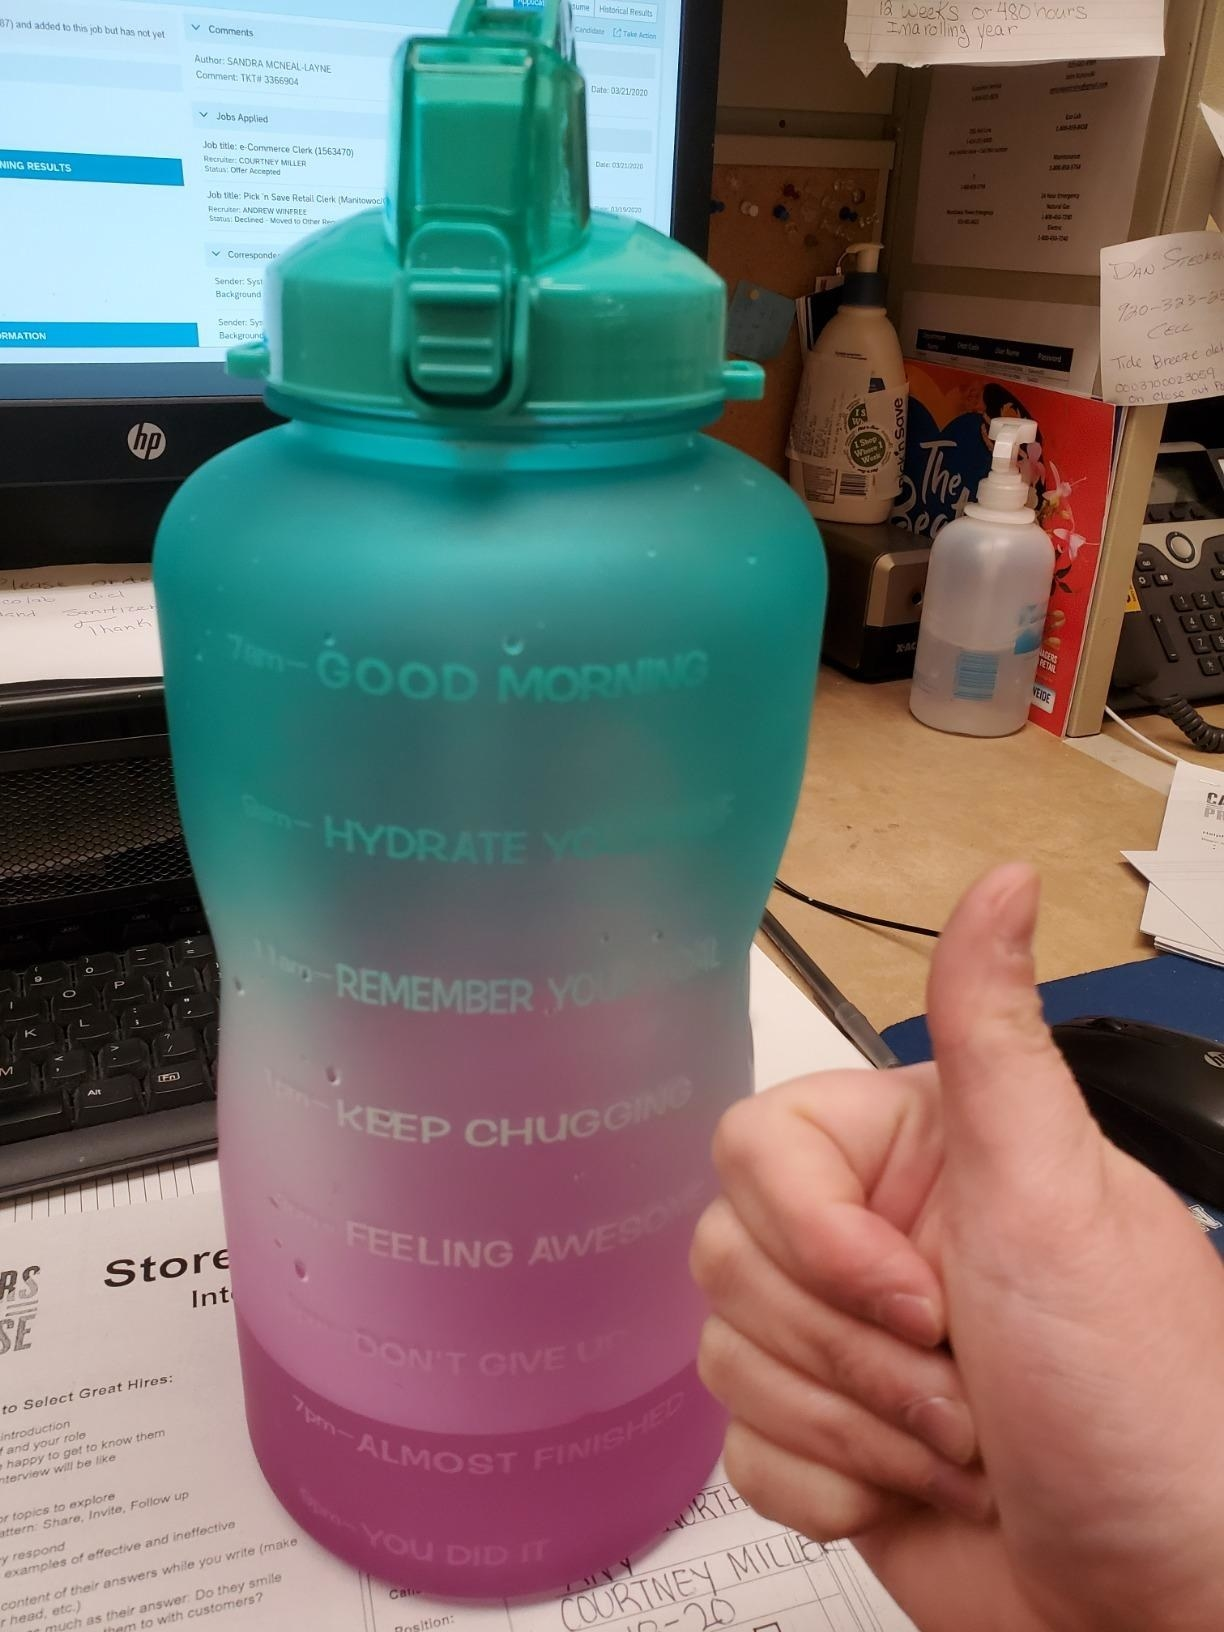 A pink and blue gradient water bottle with timestamps and motivational phrases on the side